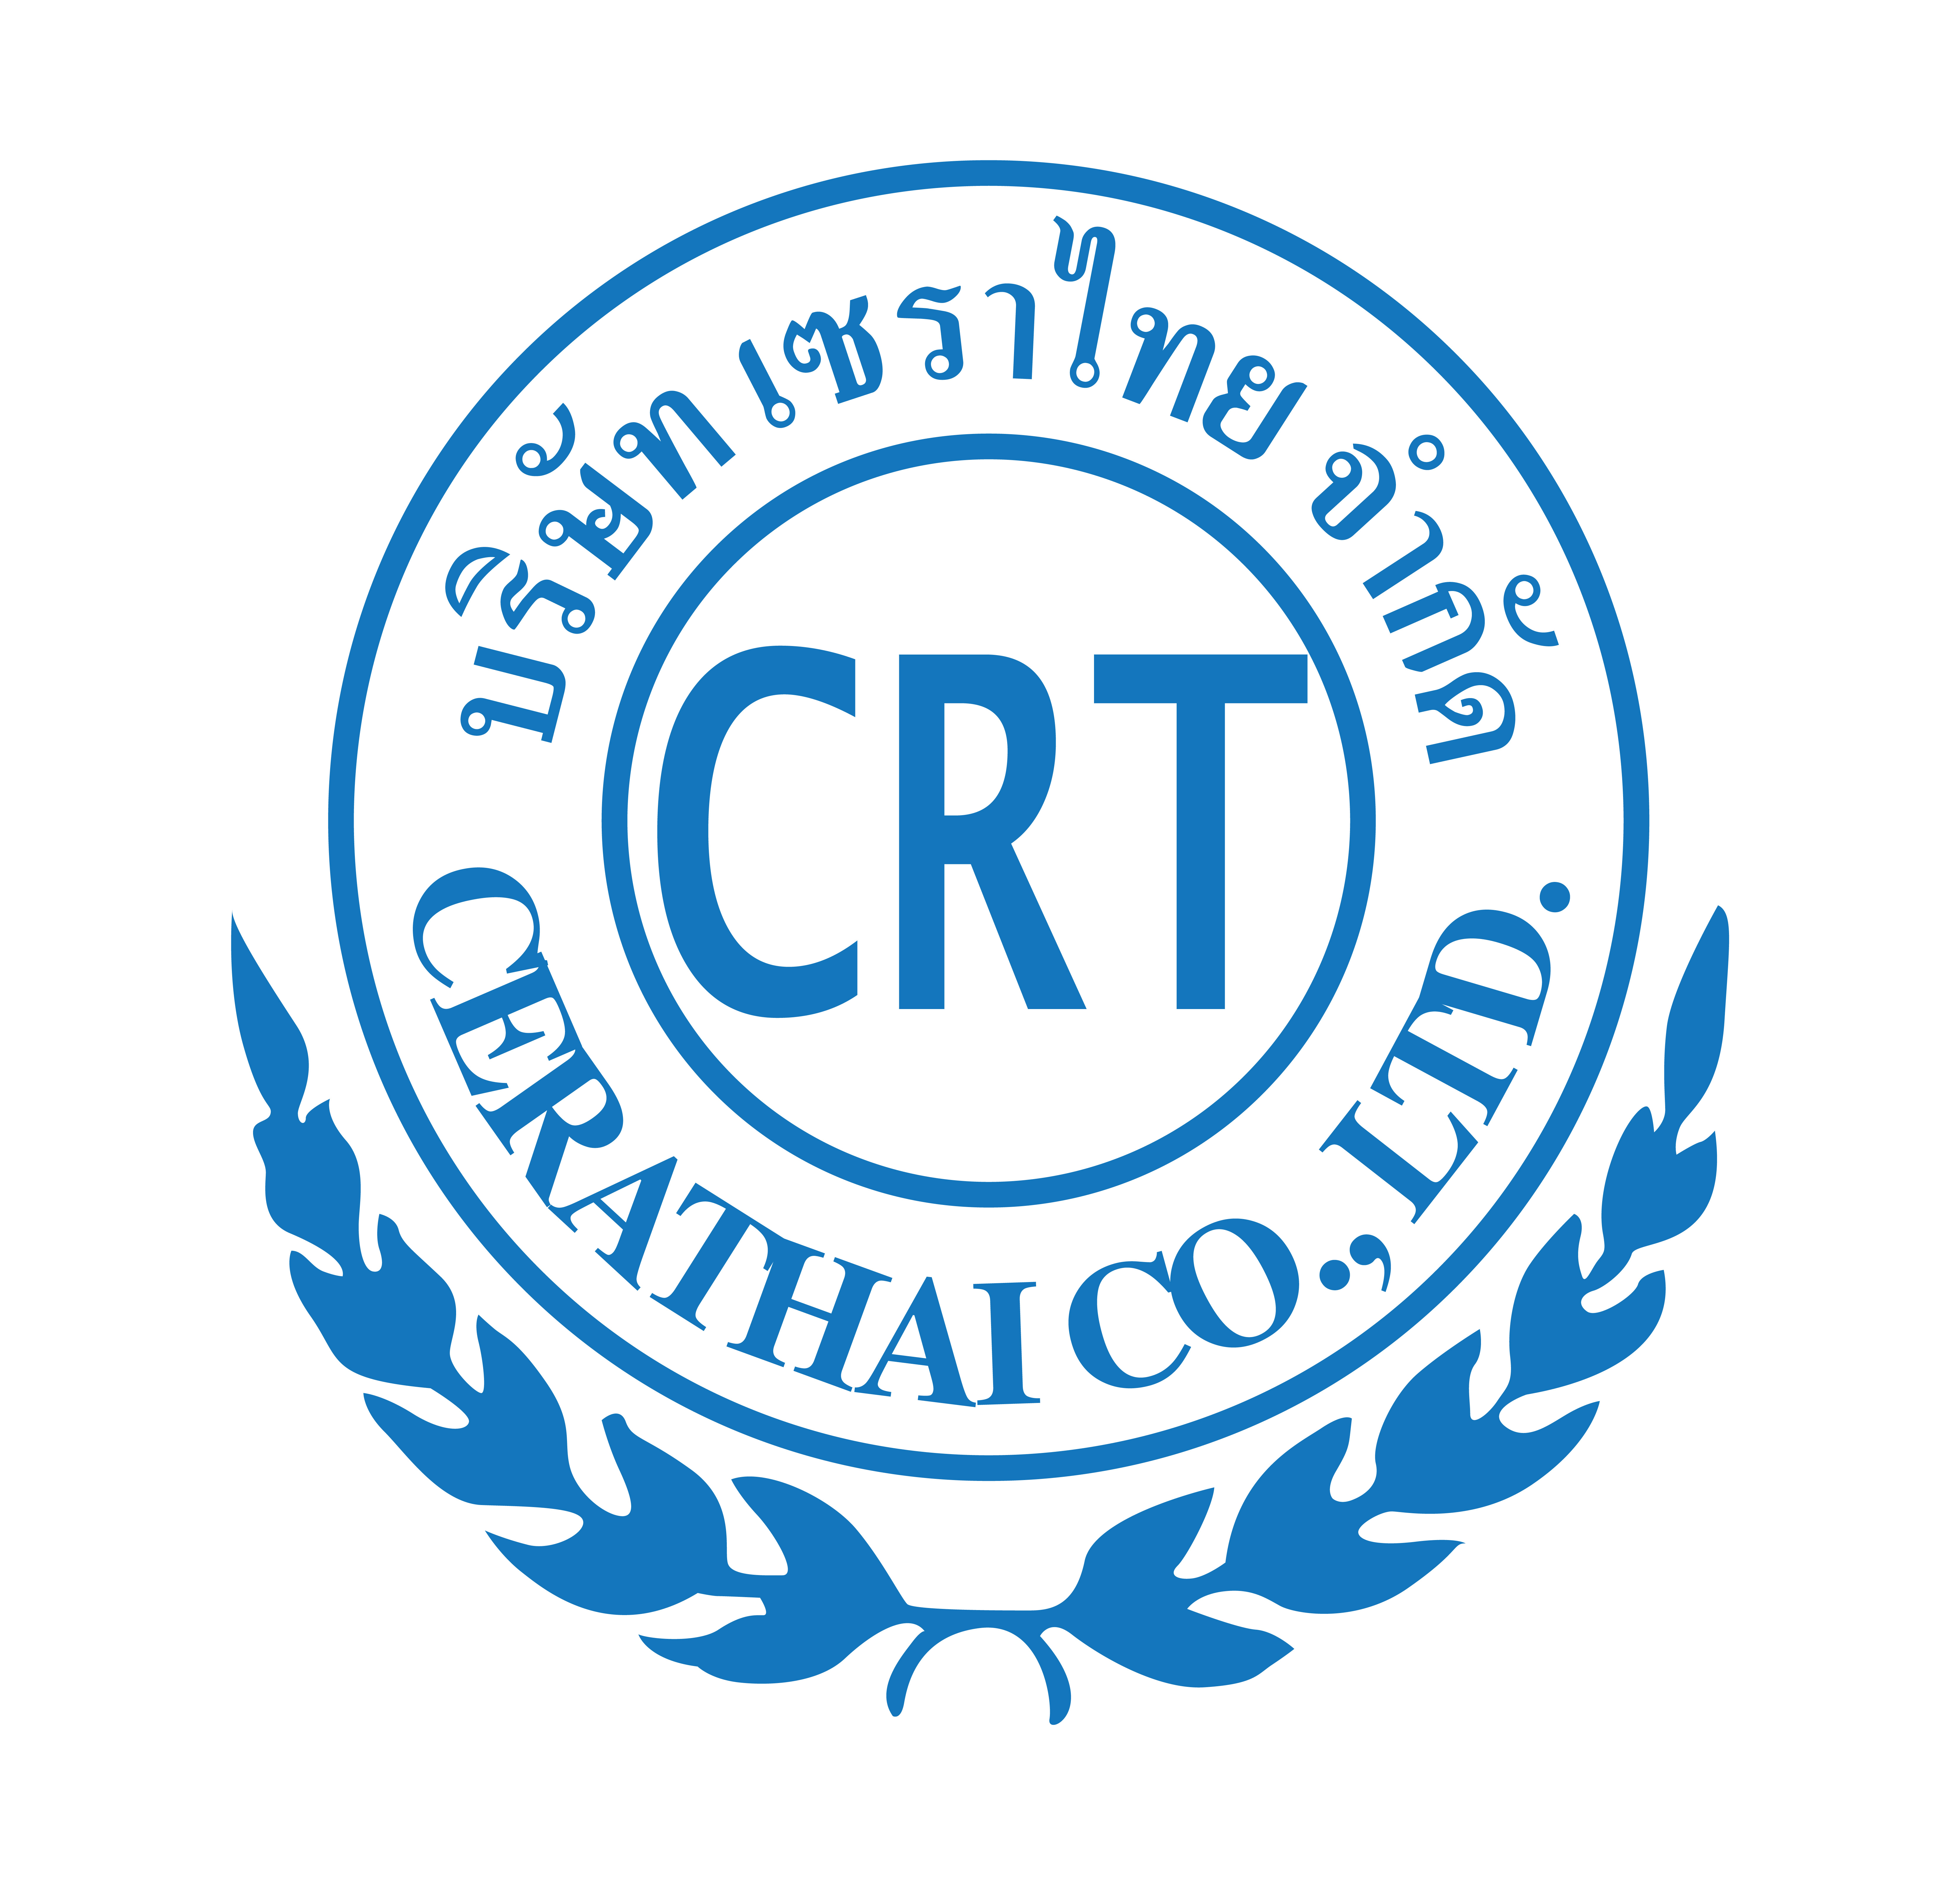 Cerathai Co.,Ltd.